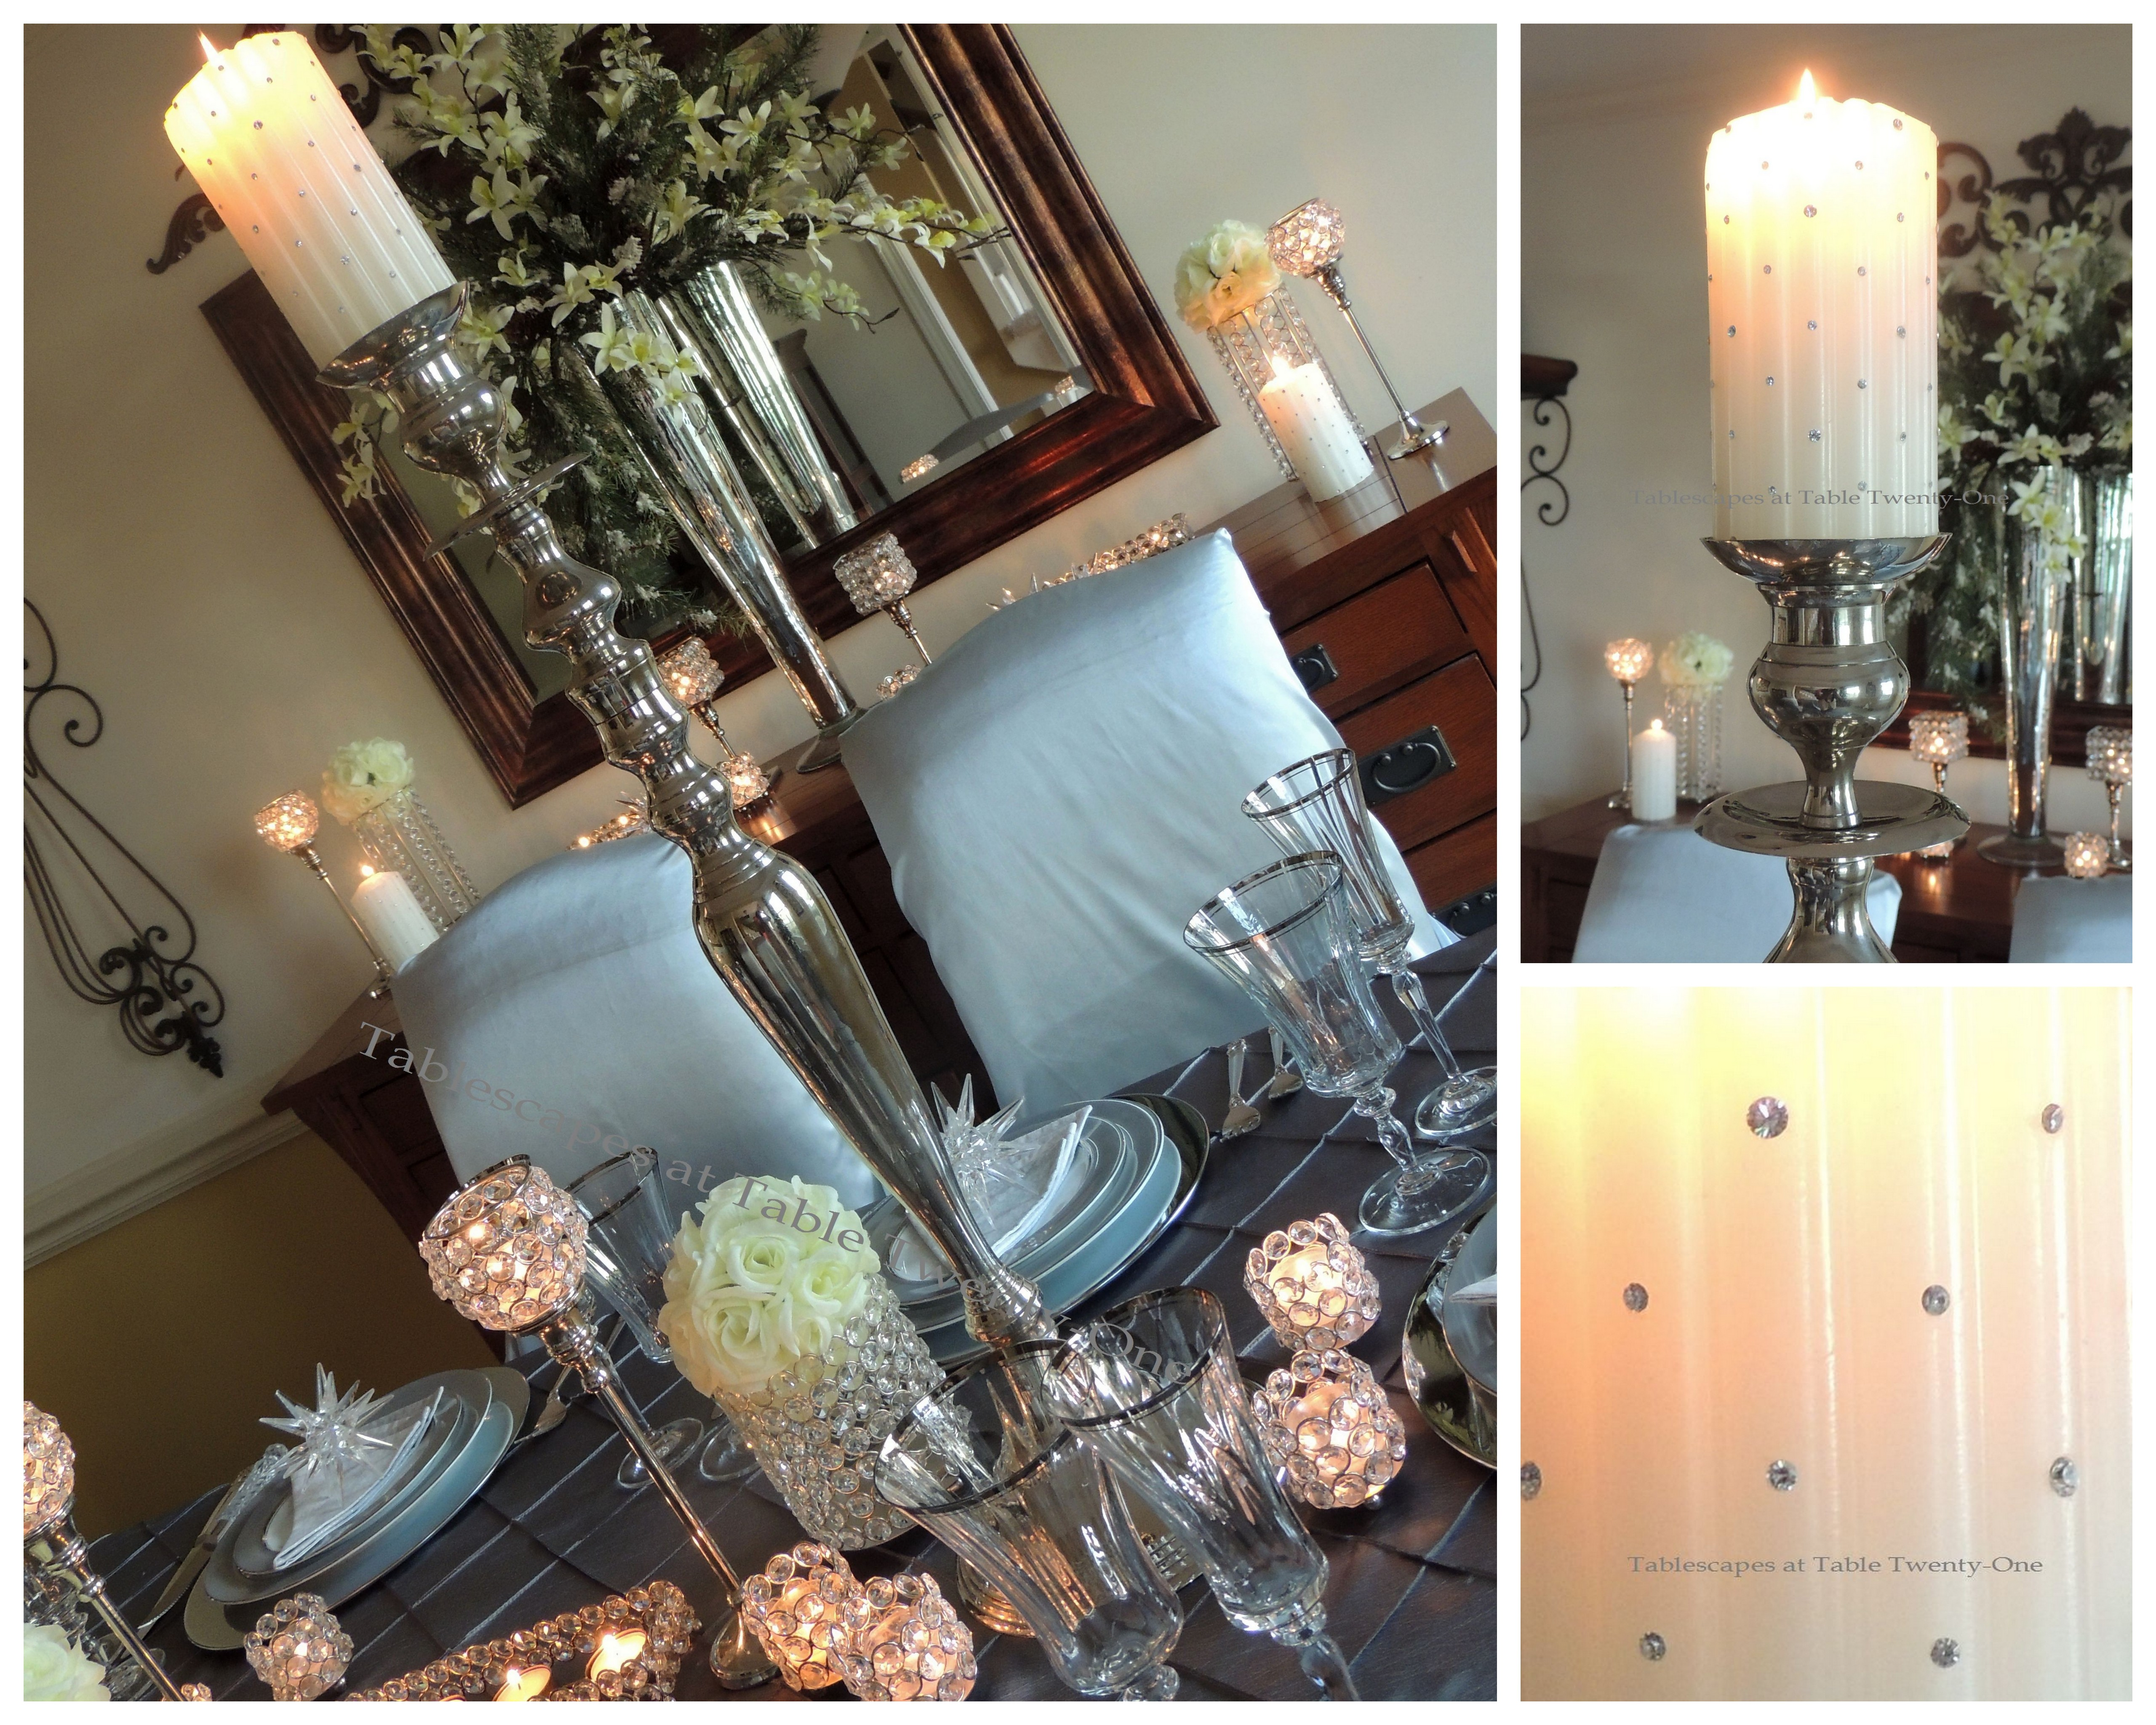 Tablescapes at Table Twenty-One, Platinum New Year's Eve Wedding: Candlestick collage